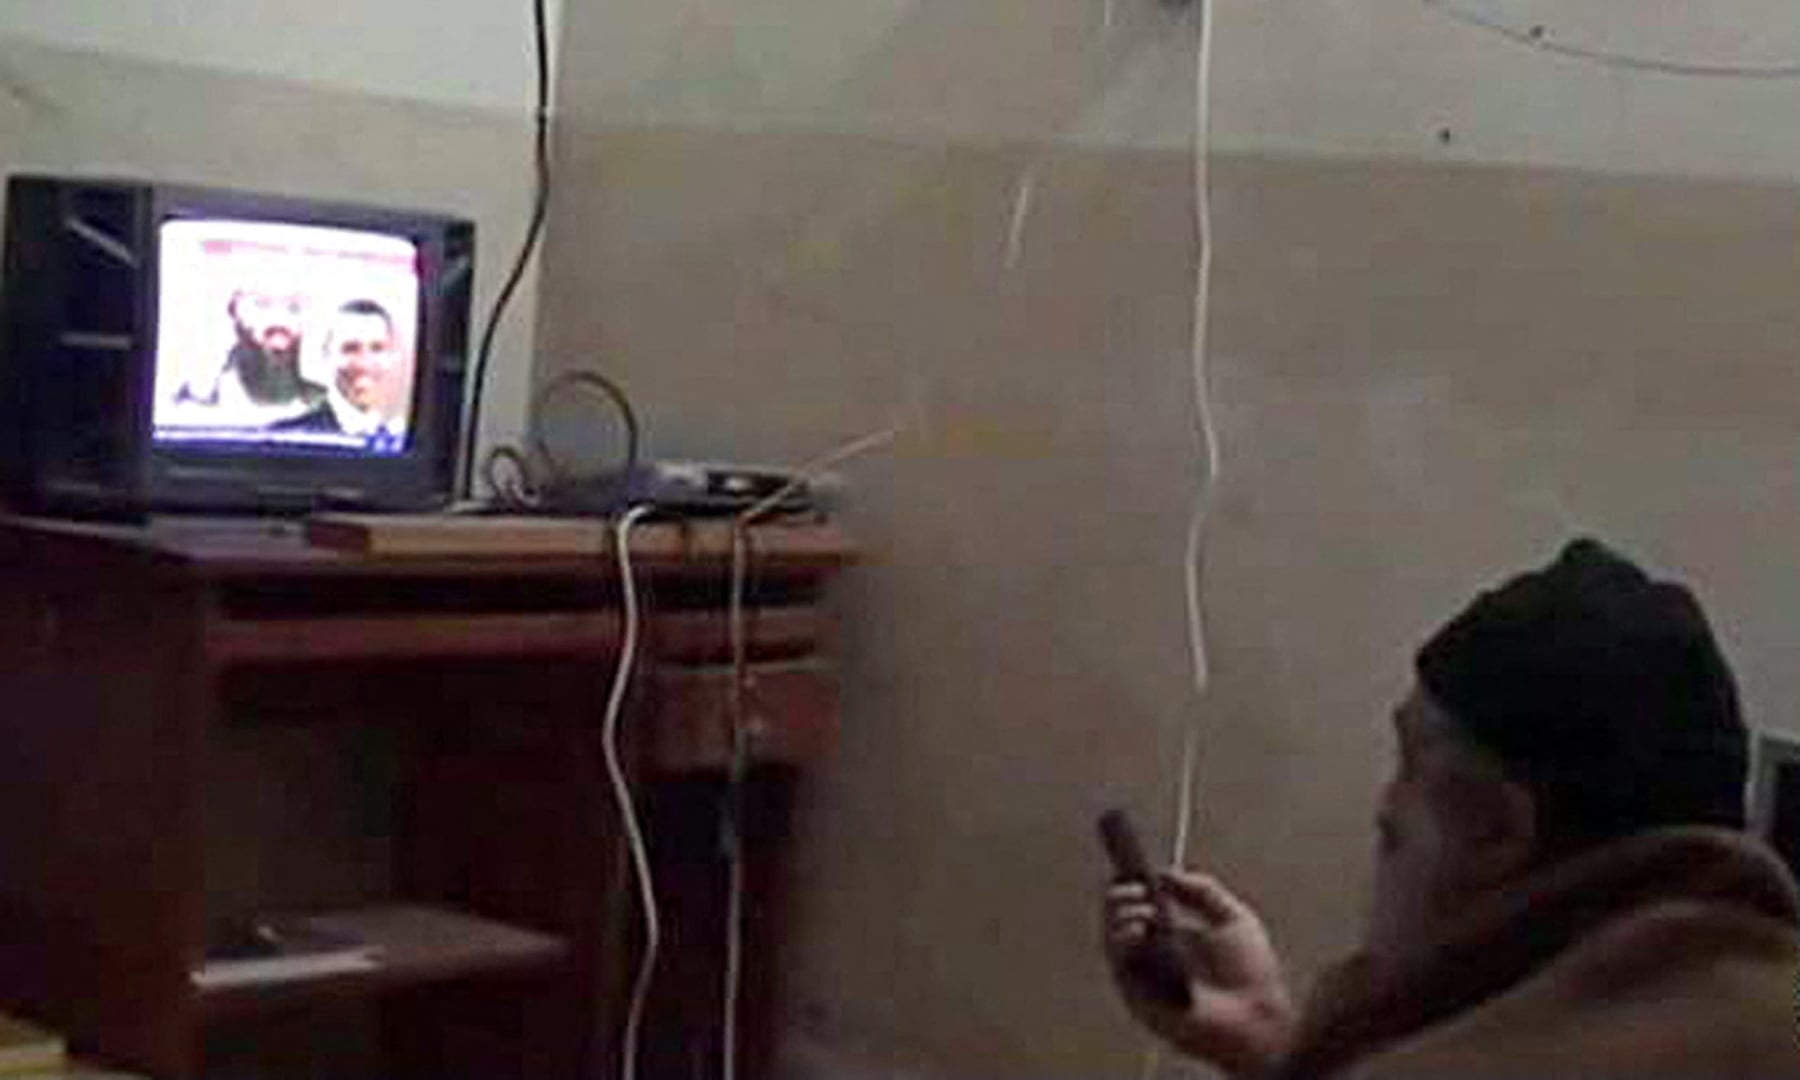 In this file photograph taken on May 7, 2011, a framegrab from an undated video released by the US Department of Defence on May 7, 2011, reportedly shows Al Qaeda leader Osama bin Laden watching himself and US president Barack Obama on television at his compound in Abbottabad. According to the Defence Department, the video was seized from the compound during a May 1 operation by US special forces in which Bin Laden was killed. — AFP/US DEPARTMENT OF DEFENCE